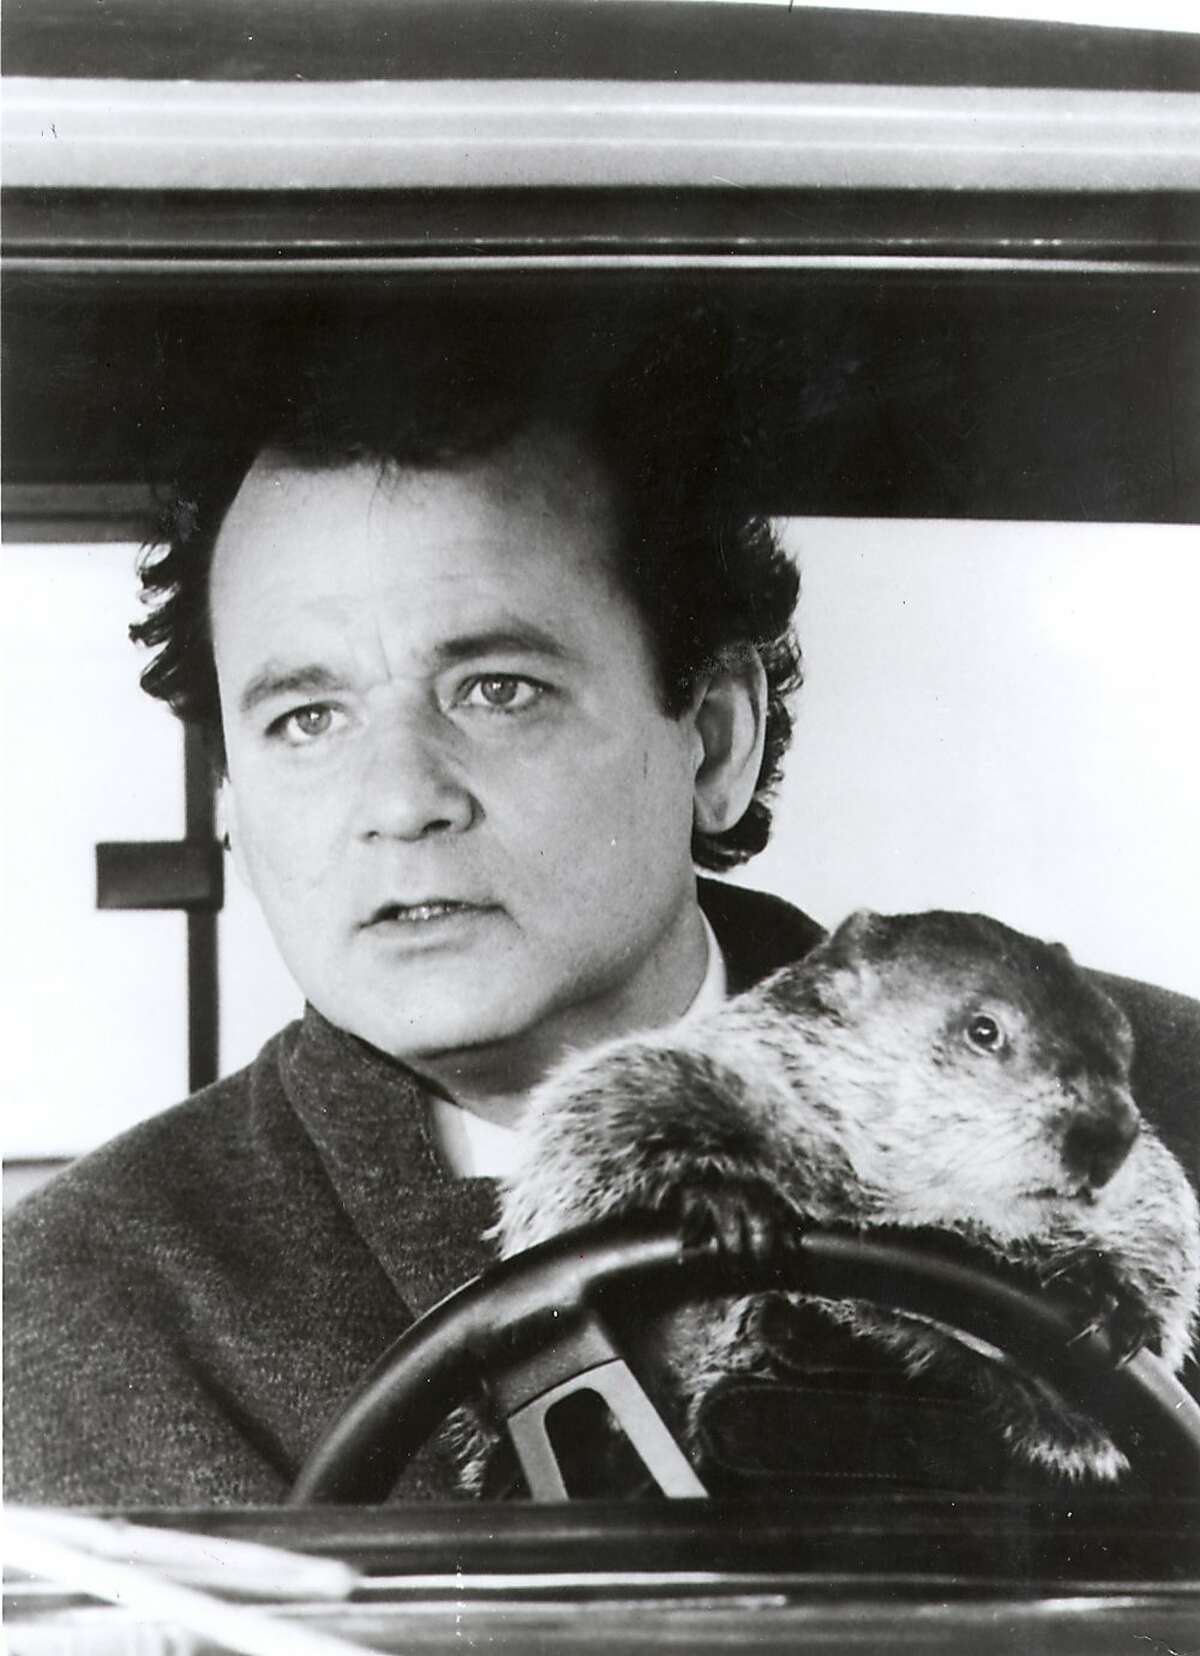 Groundhog Day (1993) Leaving Netflix Dec. 1 Bill Murray stars as a cynical weatherman who gets stuck repeating Groundhog Day until he can work to fix his never-ending predicament.